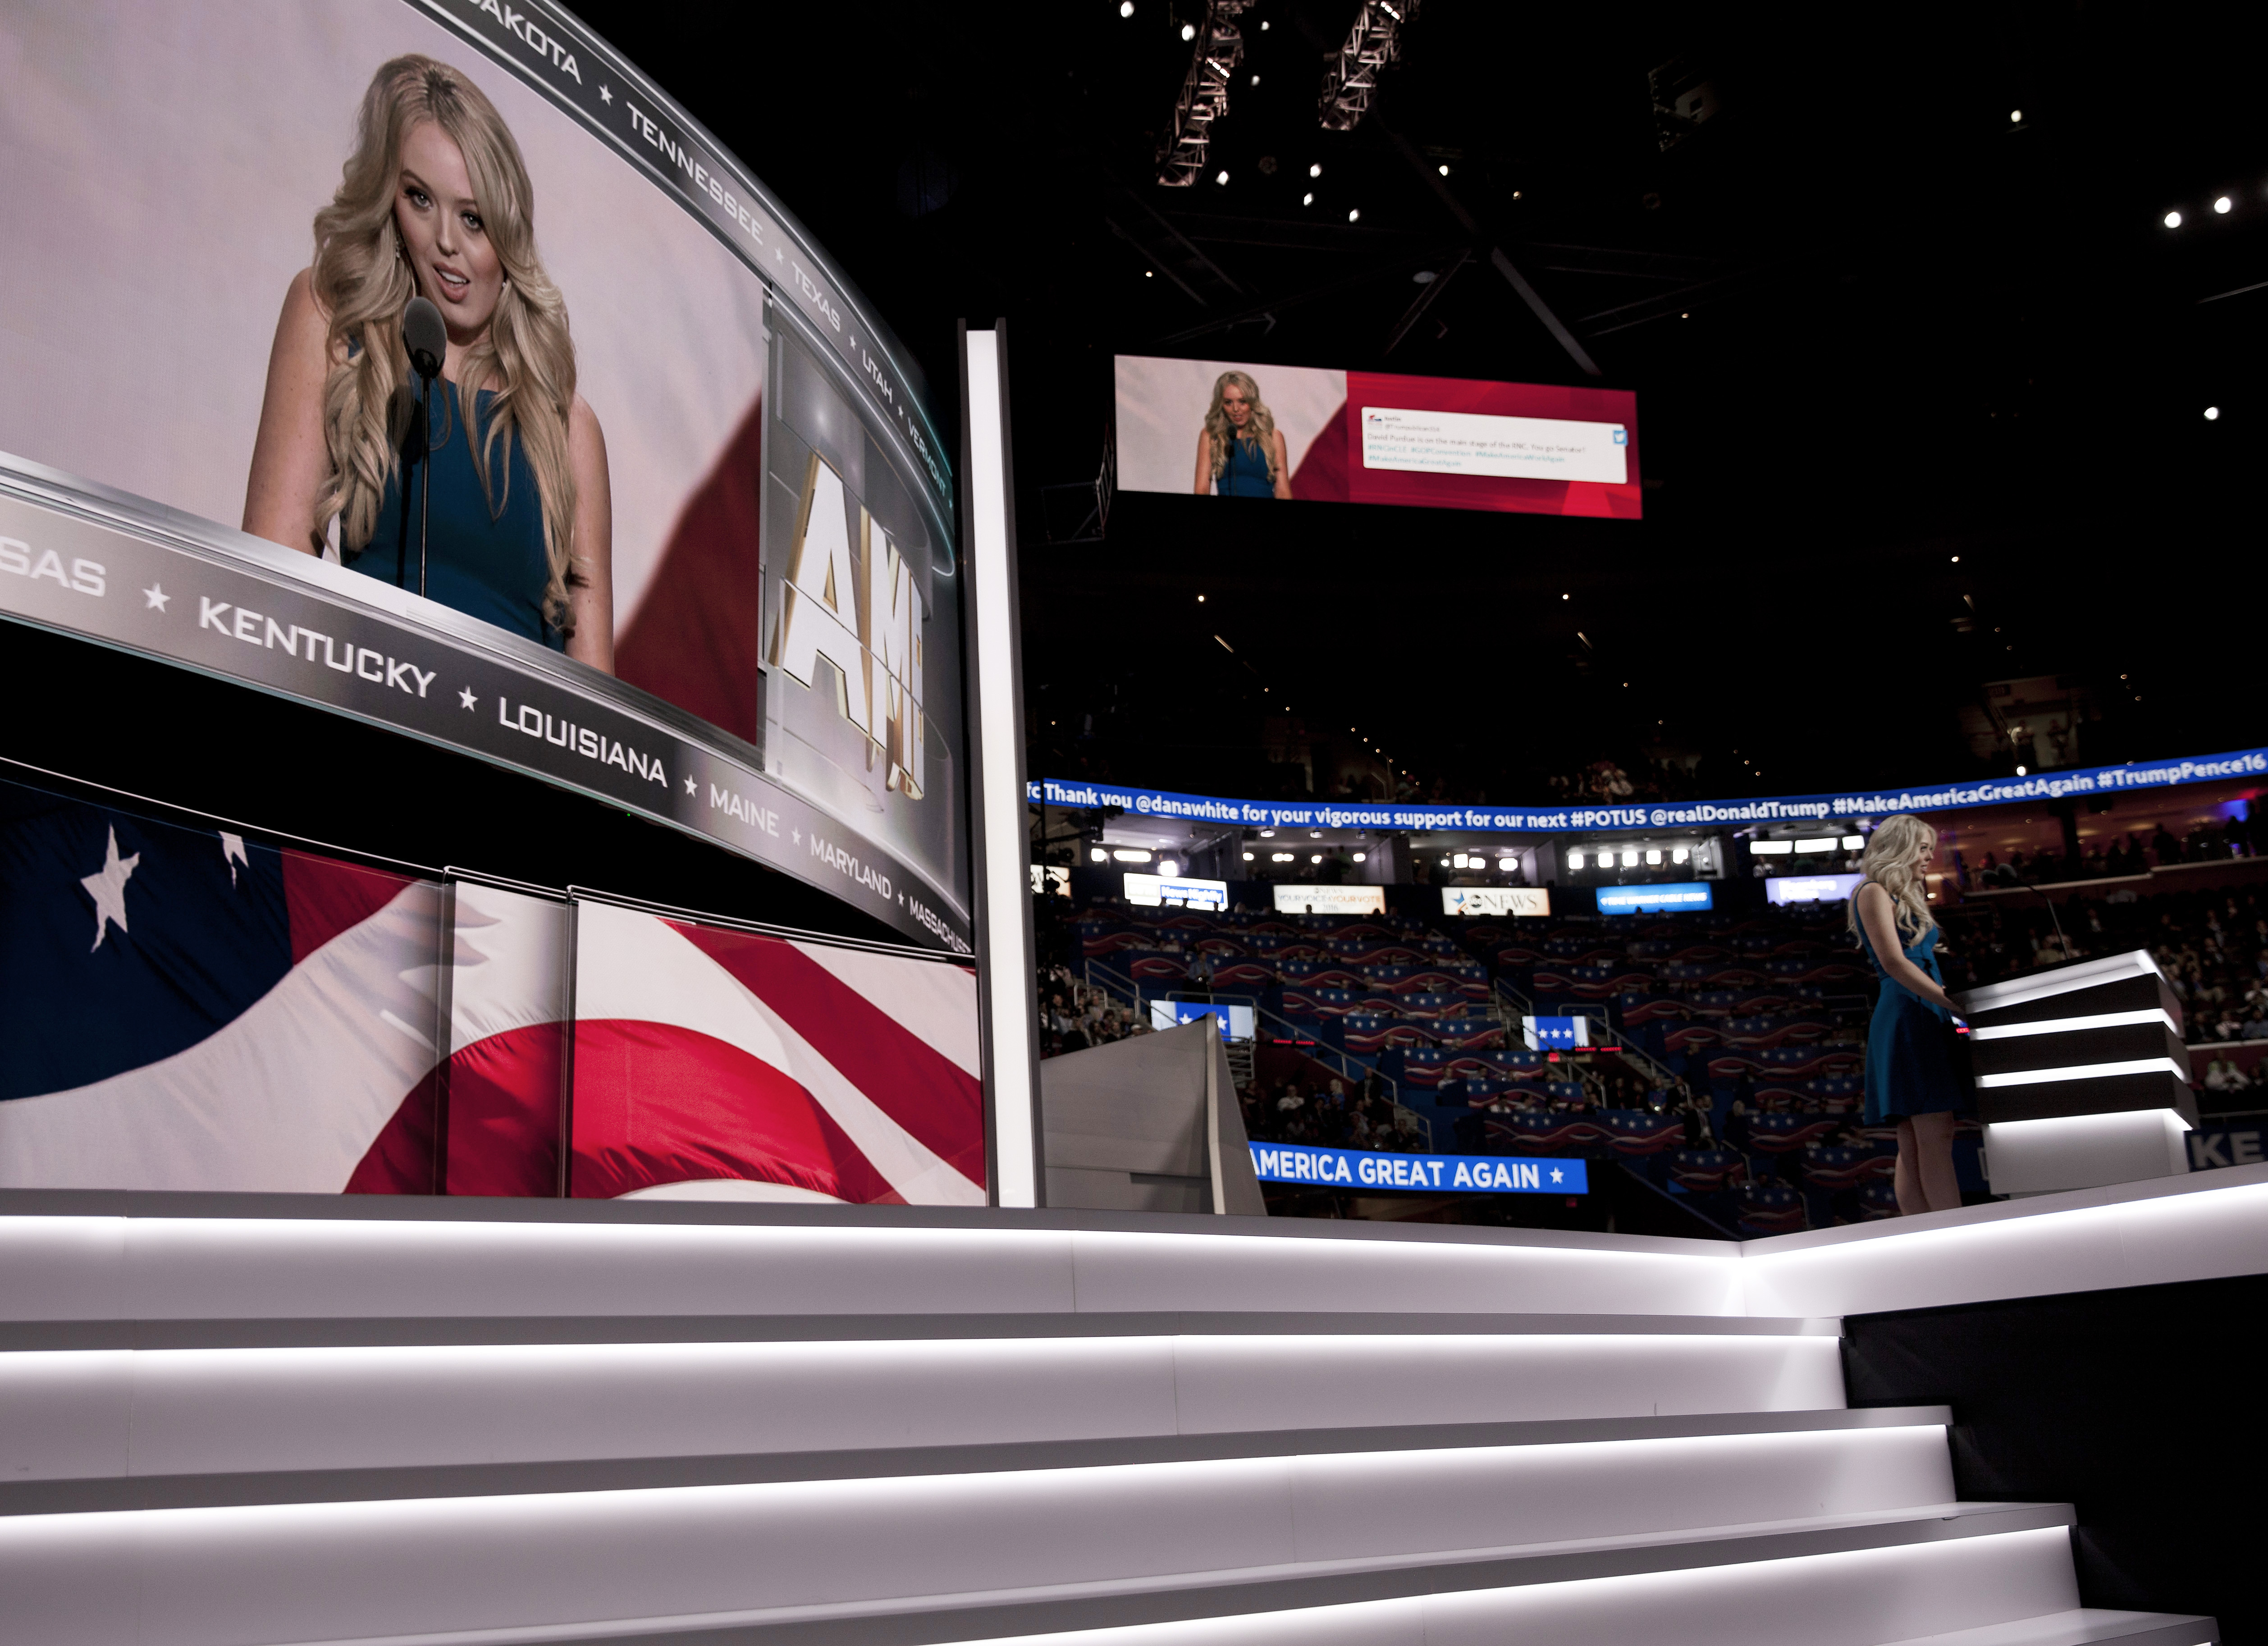 Tiffany Trump, daughter of Donald Trump, speaks at the 2016 Republican National Convention in Cleveland on July 19, 2016.